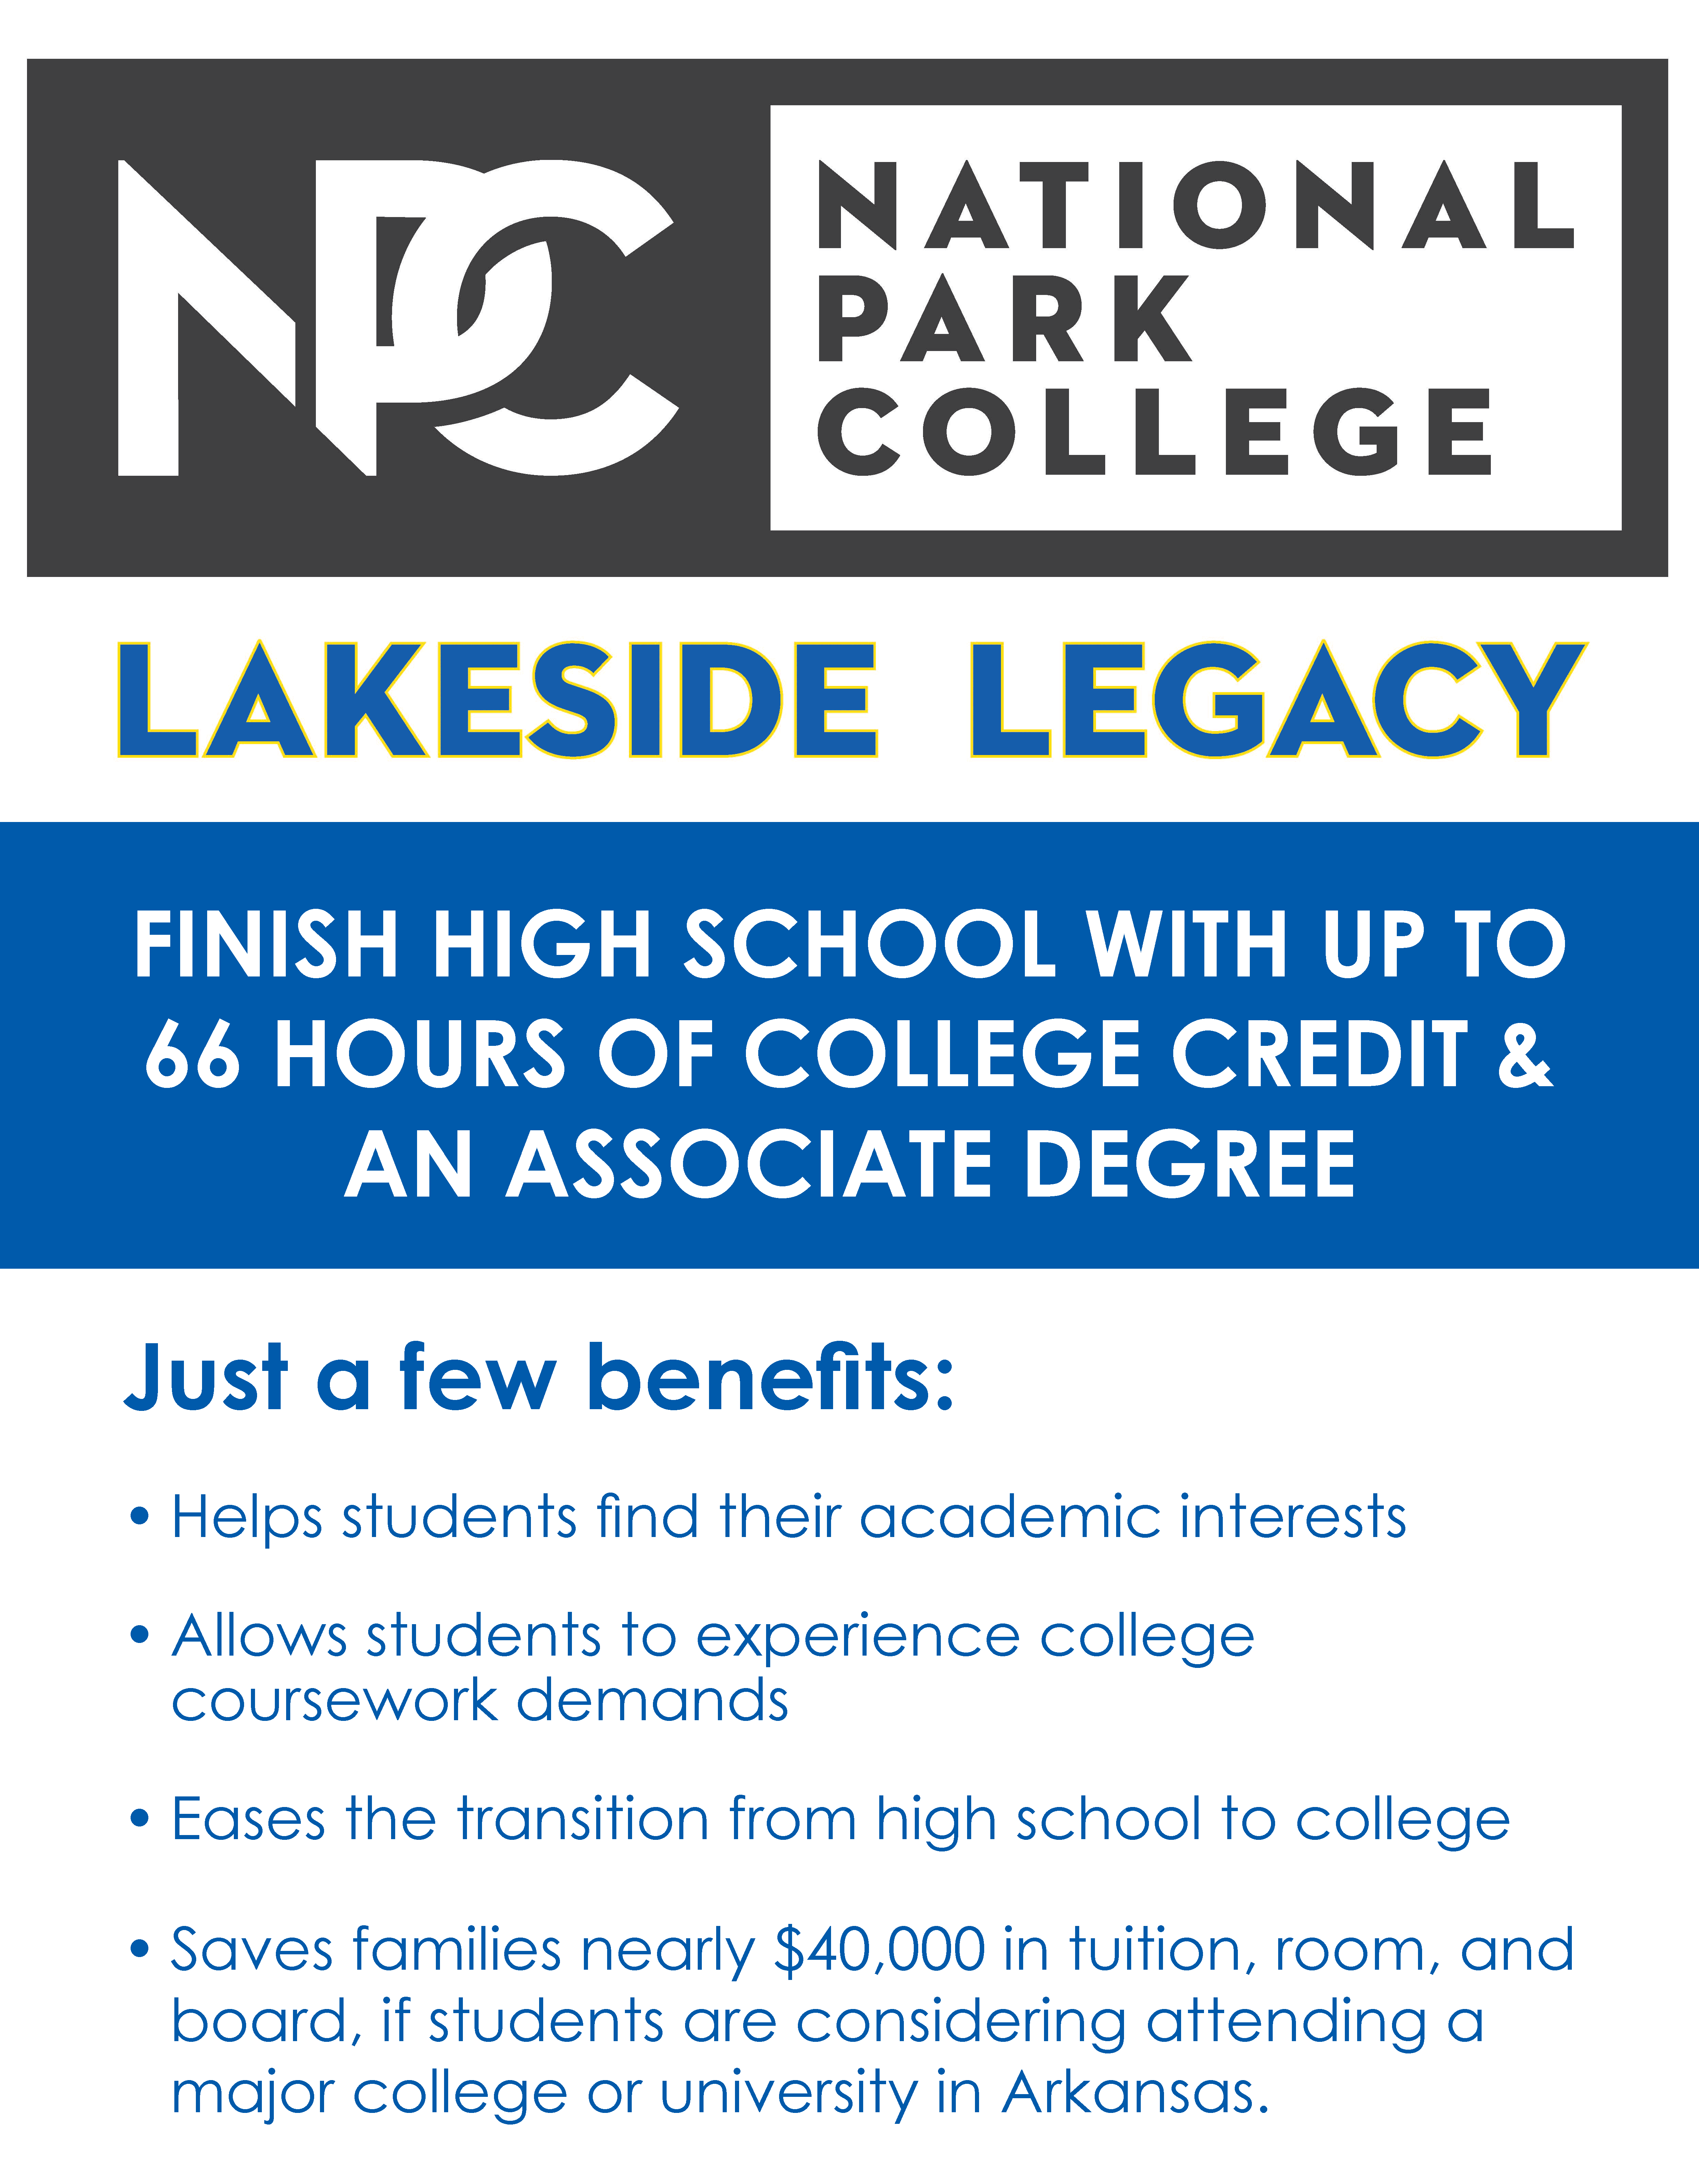 Image that says: Just a few benefits of the Lakeside Legacy Program:  Helps students find their academic interests Allows students to experience college coursework demands Eases the transition from high school to college Saves families money on tuition and fees--sixty-six college hours is equivalent to nearly $40,000 in tuition, room, and board, if students are considering attending a major college or university in Arkansas.